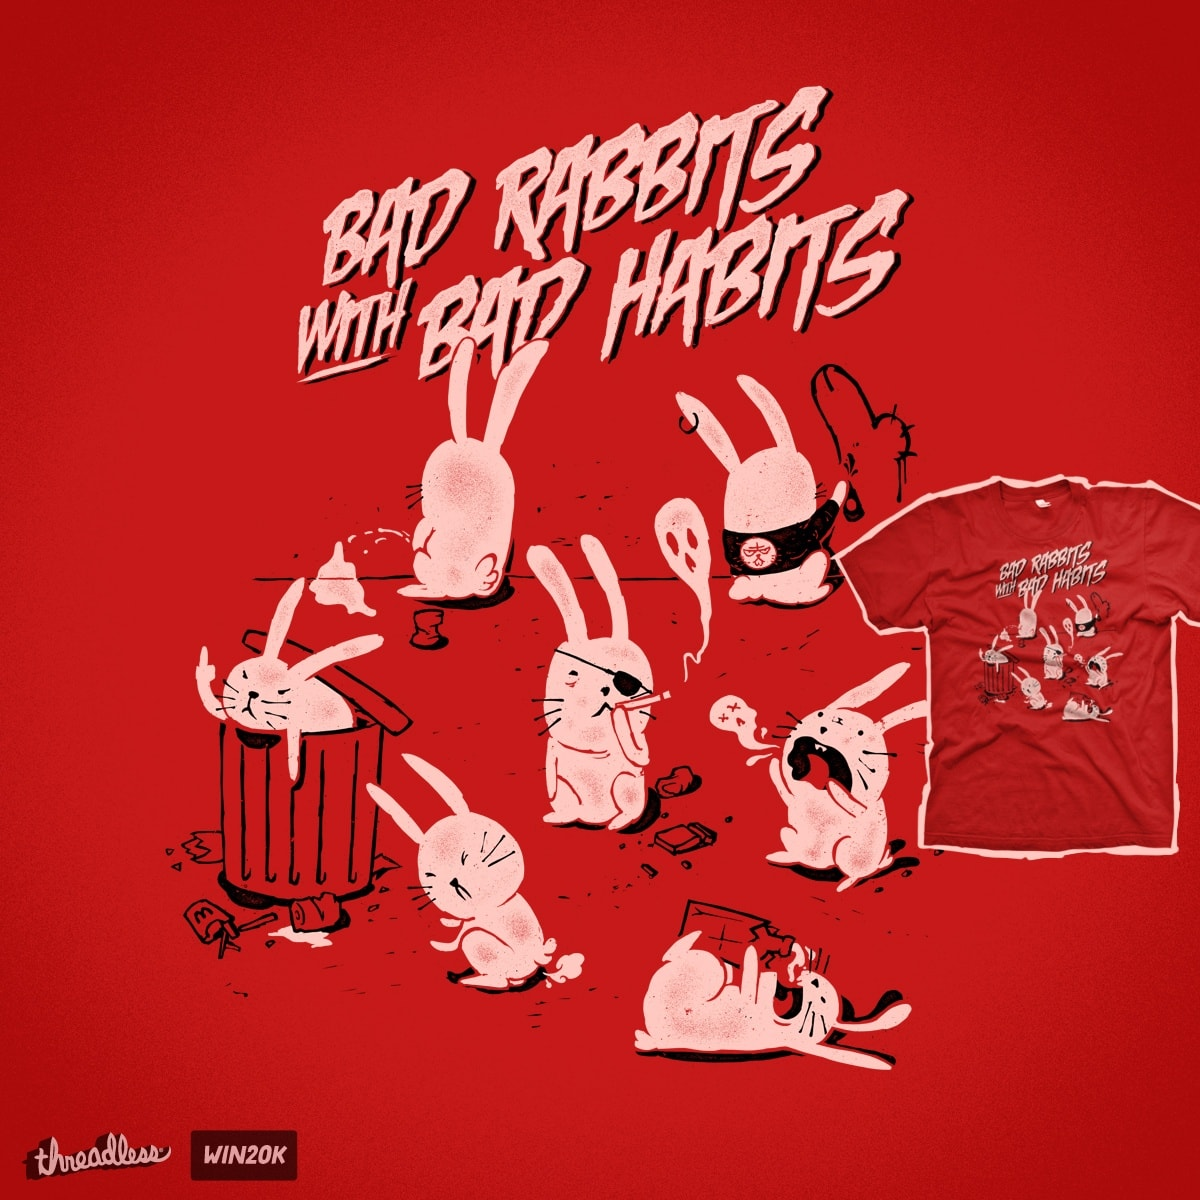 Bad rabbits with bad habits by mathiole on Threadless